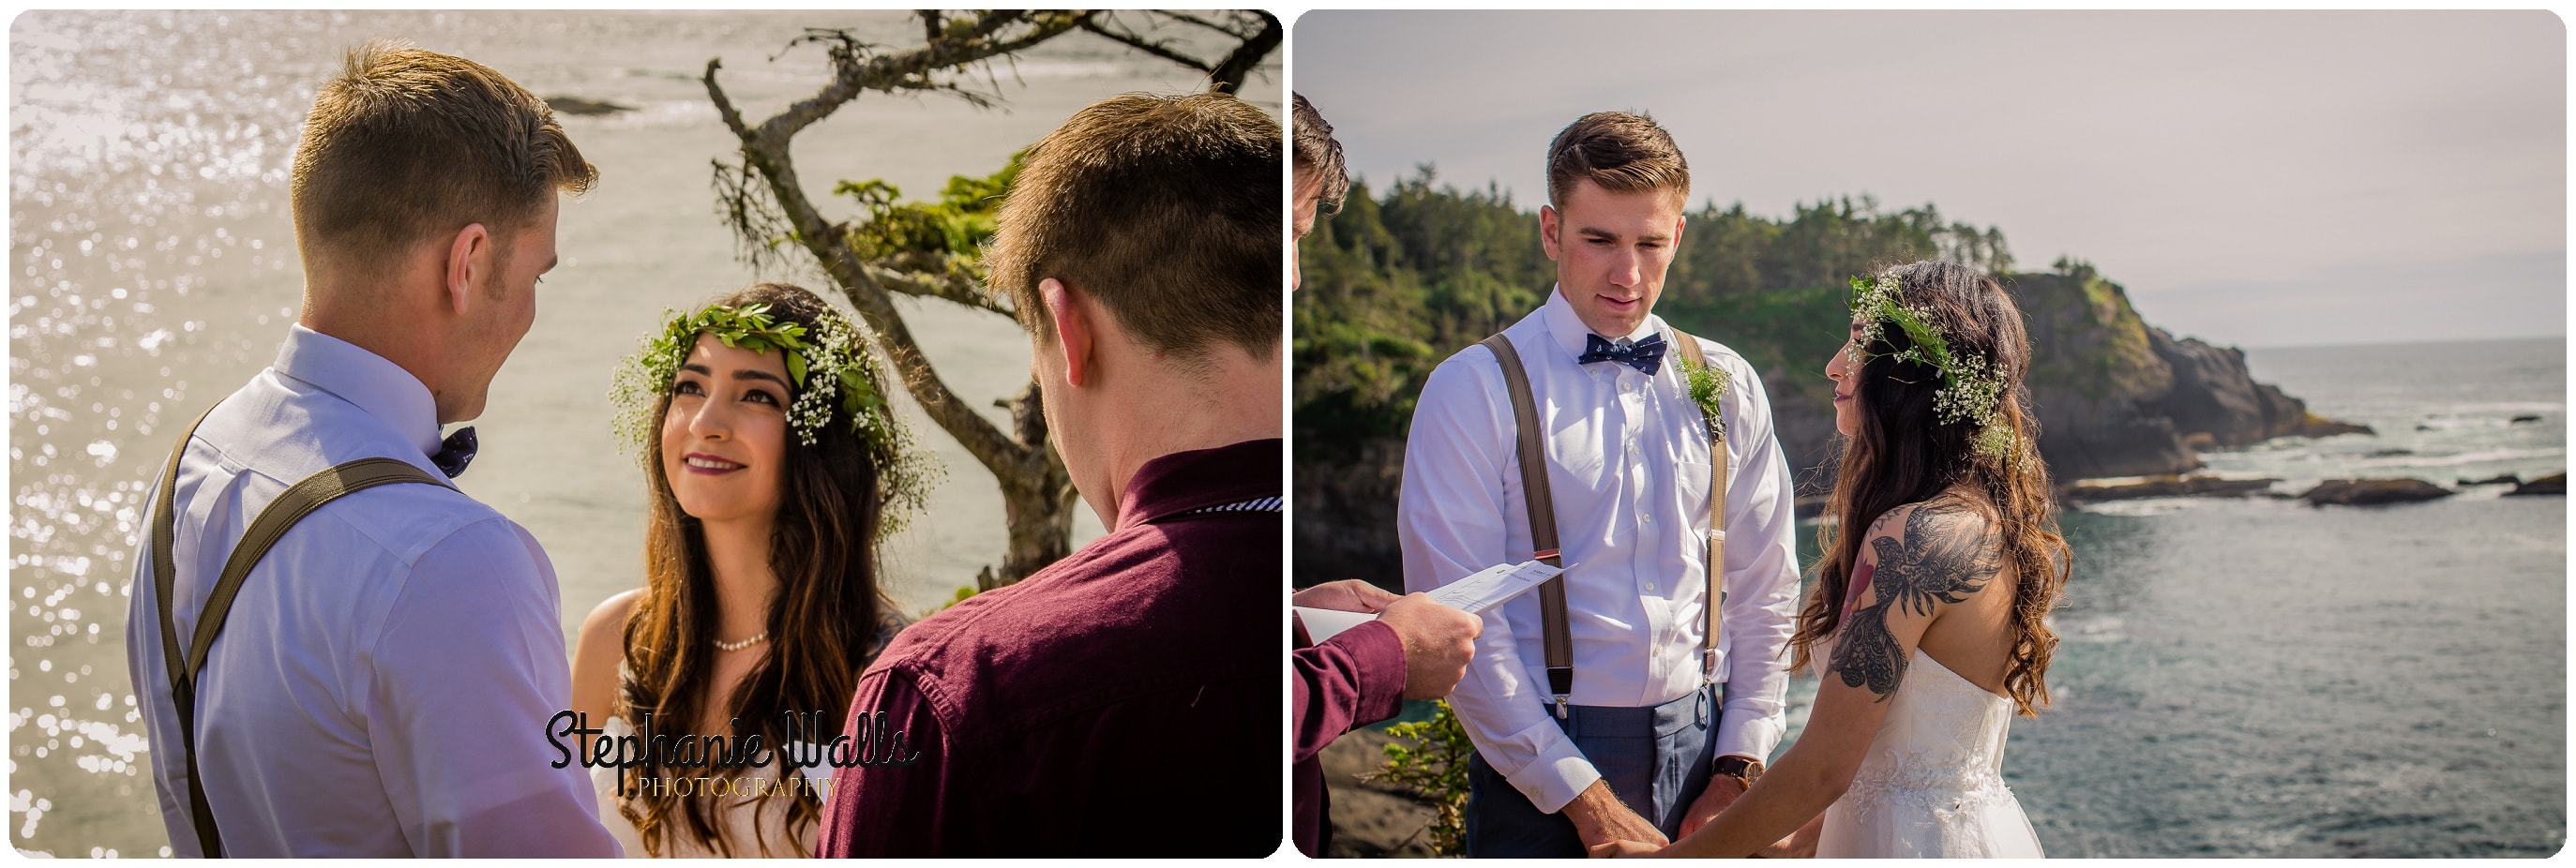 belfour 082 INTIMATE CLIFFSIDE ELOPEMENT | CAPE FLATTERY NEAH BAY | STEPHANIE WALLS PHOTOGRAPHY